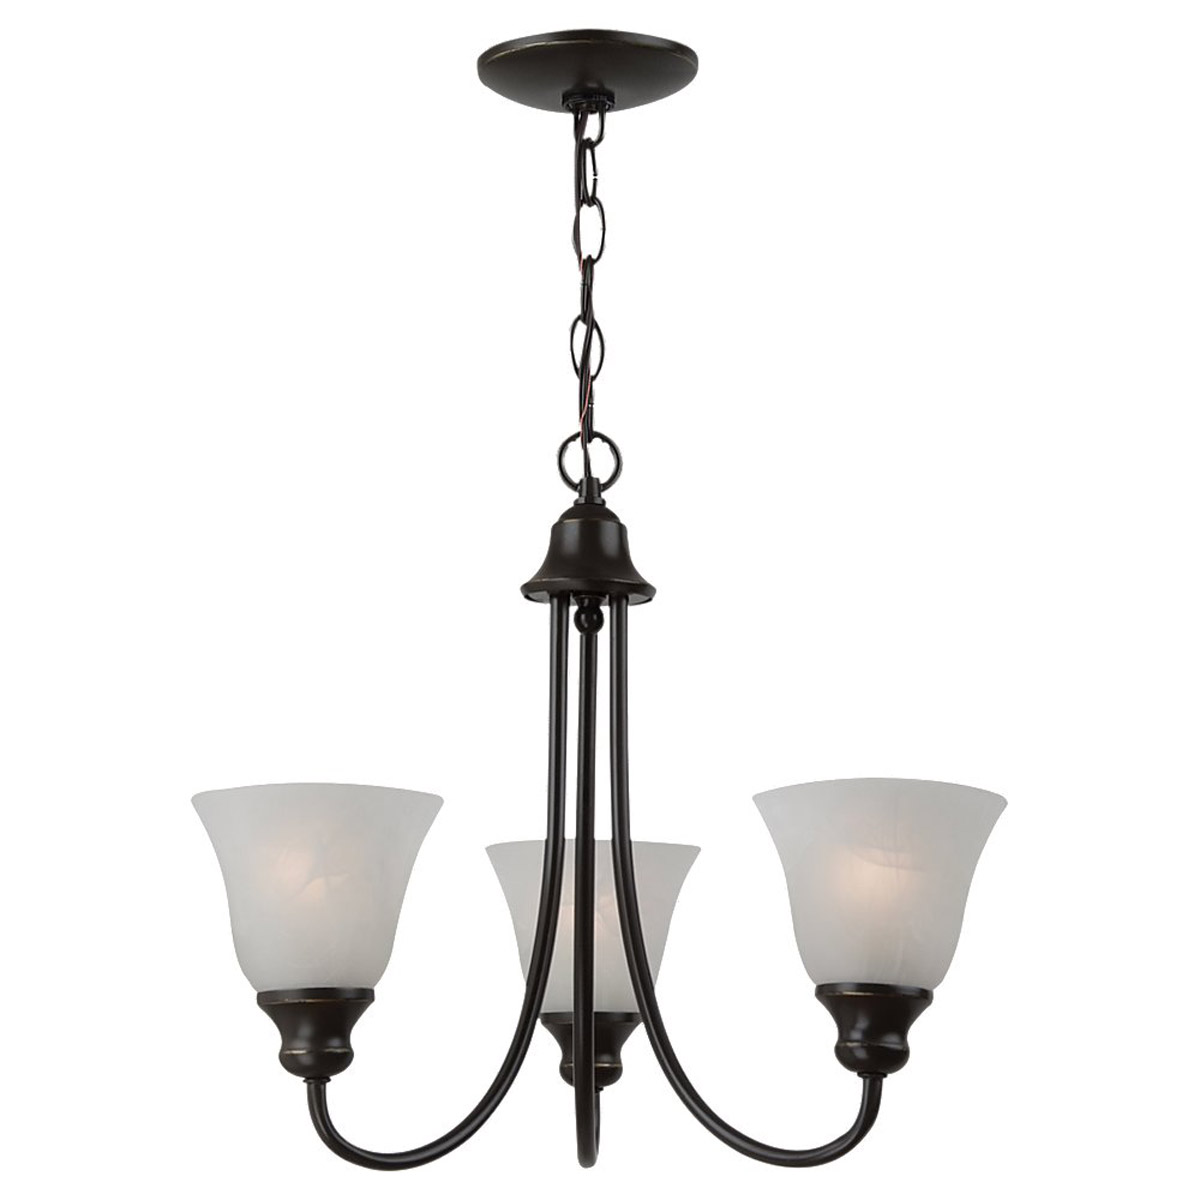 Sea Gull Lighting Windgate 3 Light Chandelier in Heirloom Bronze 35939BLE-782 photo